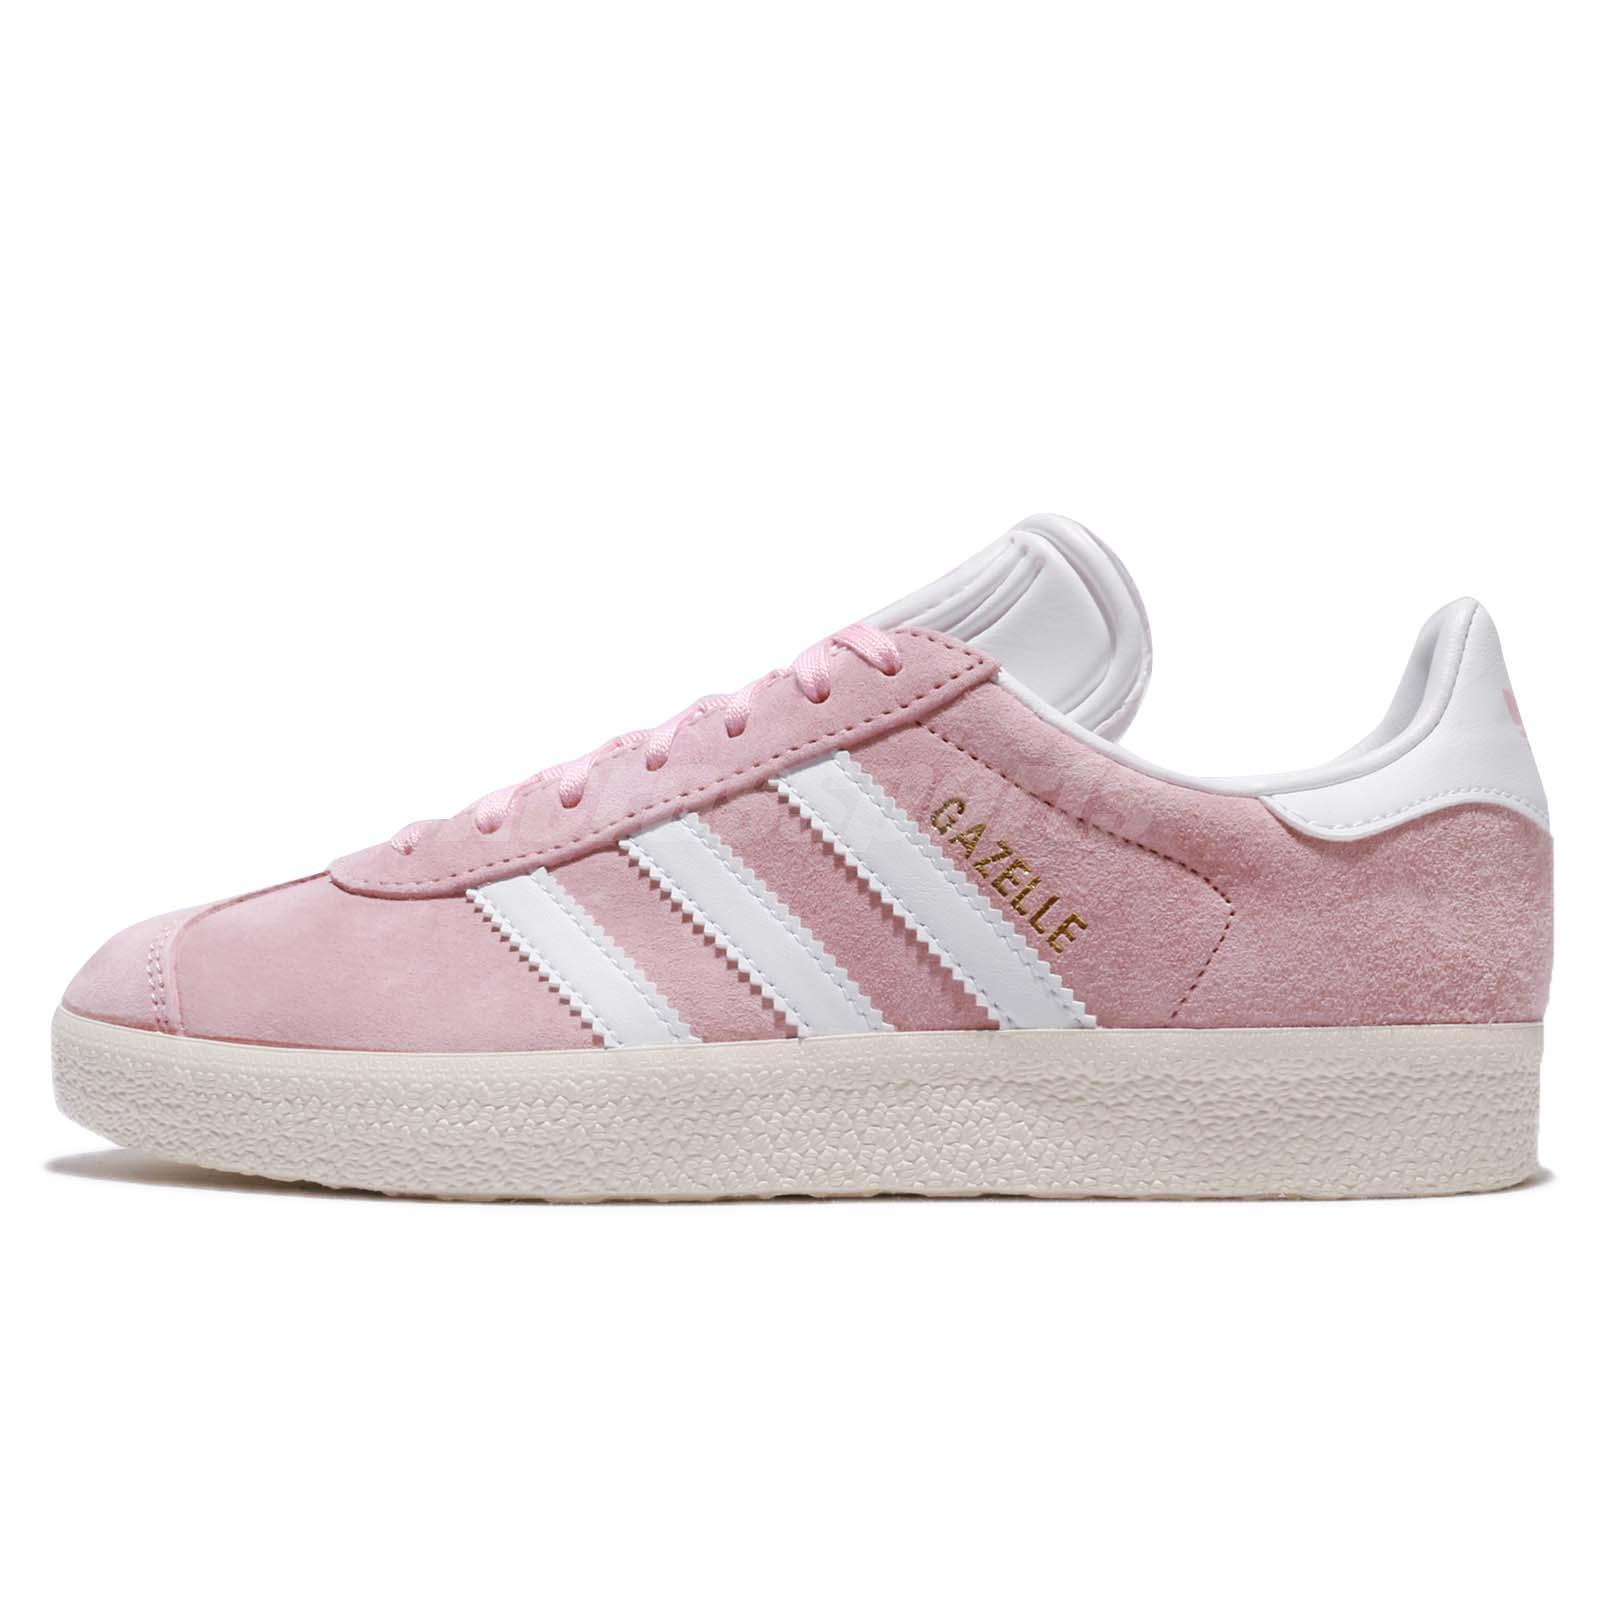 promo code e43a5 69c28 adidas Originals Gazelle W Wonder Pink White Nubuck Women Shoes Sneakers  BY9352